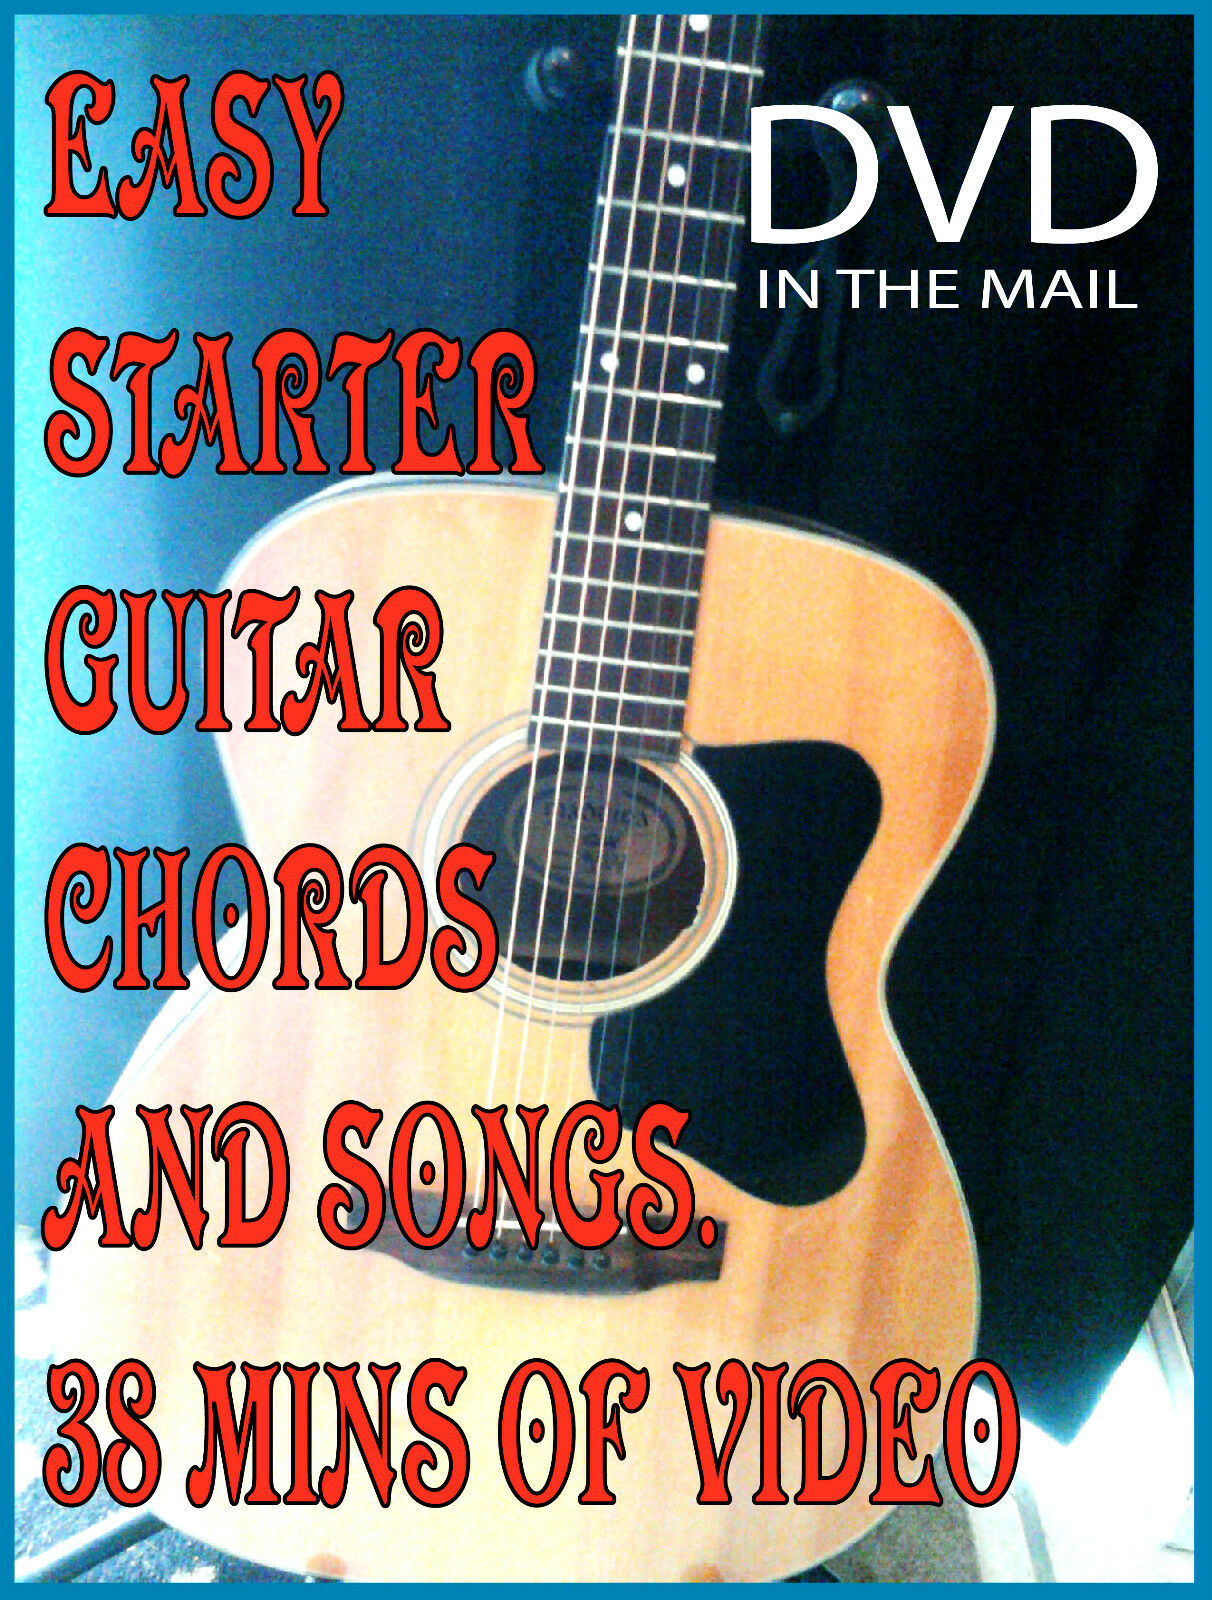 SANTERIA CHORDS by Sublime @ Ultimate-Guitar.Com